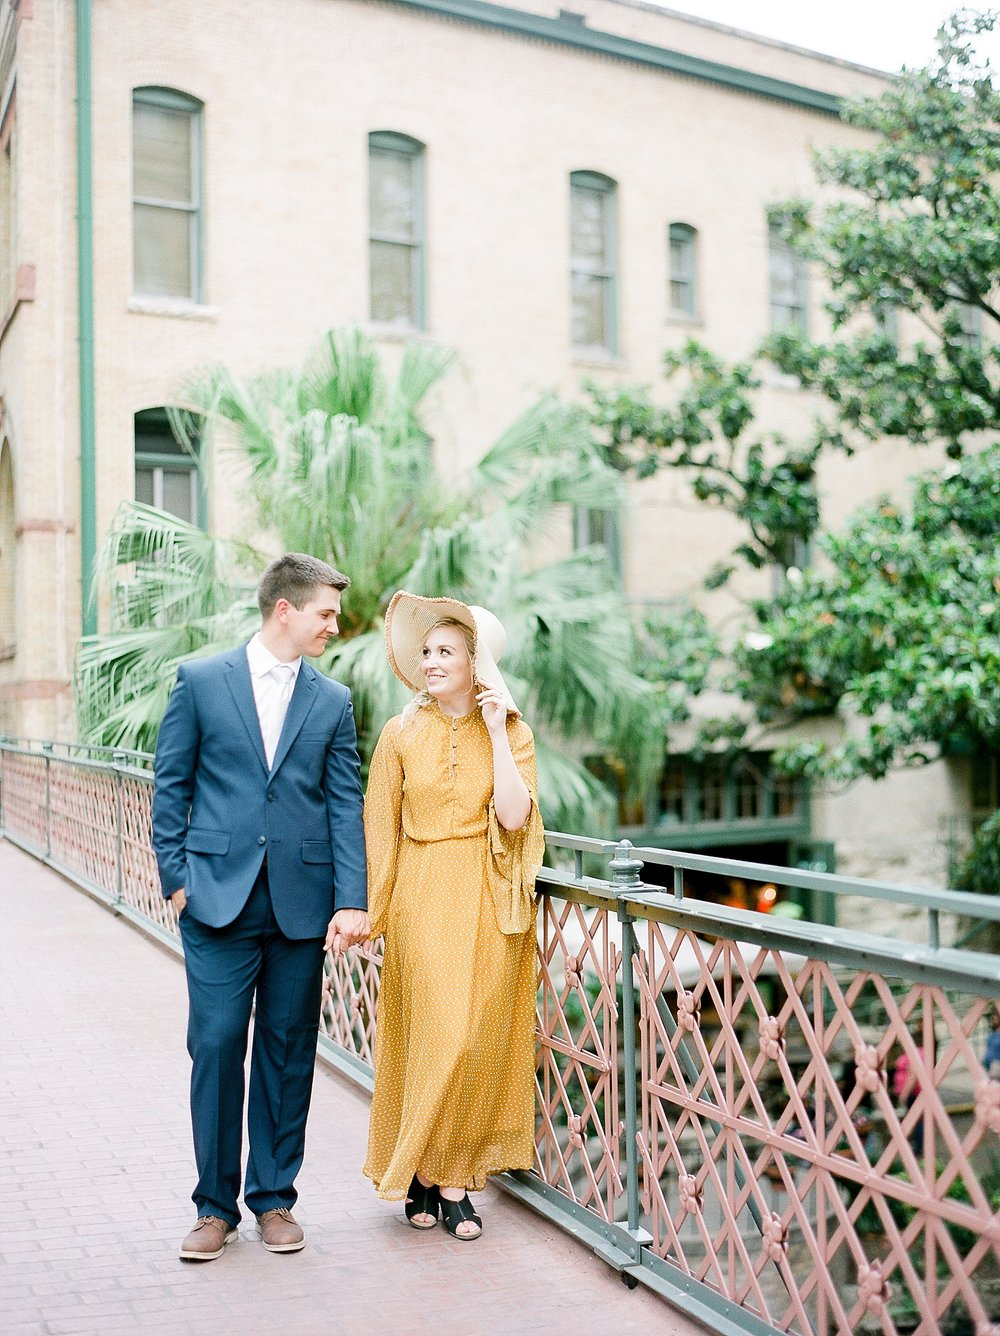 Hybrid Co Anniversary Shoot at River Walk, San Antonio, TX by Julie Paisley Photography_0005.jpg